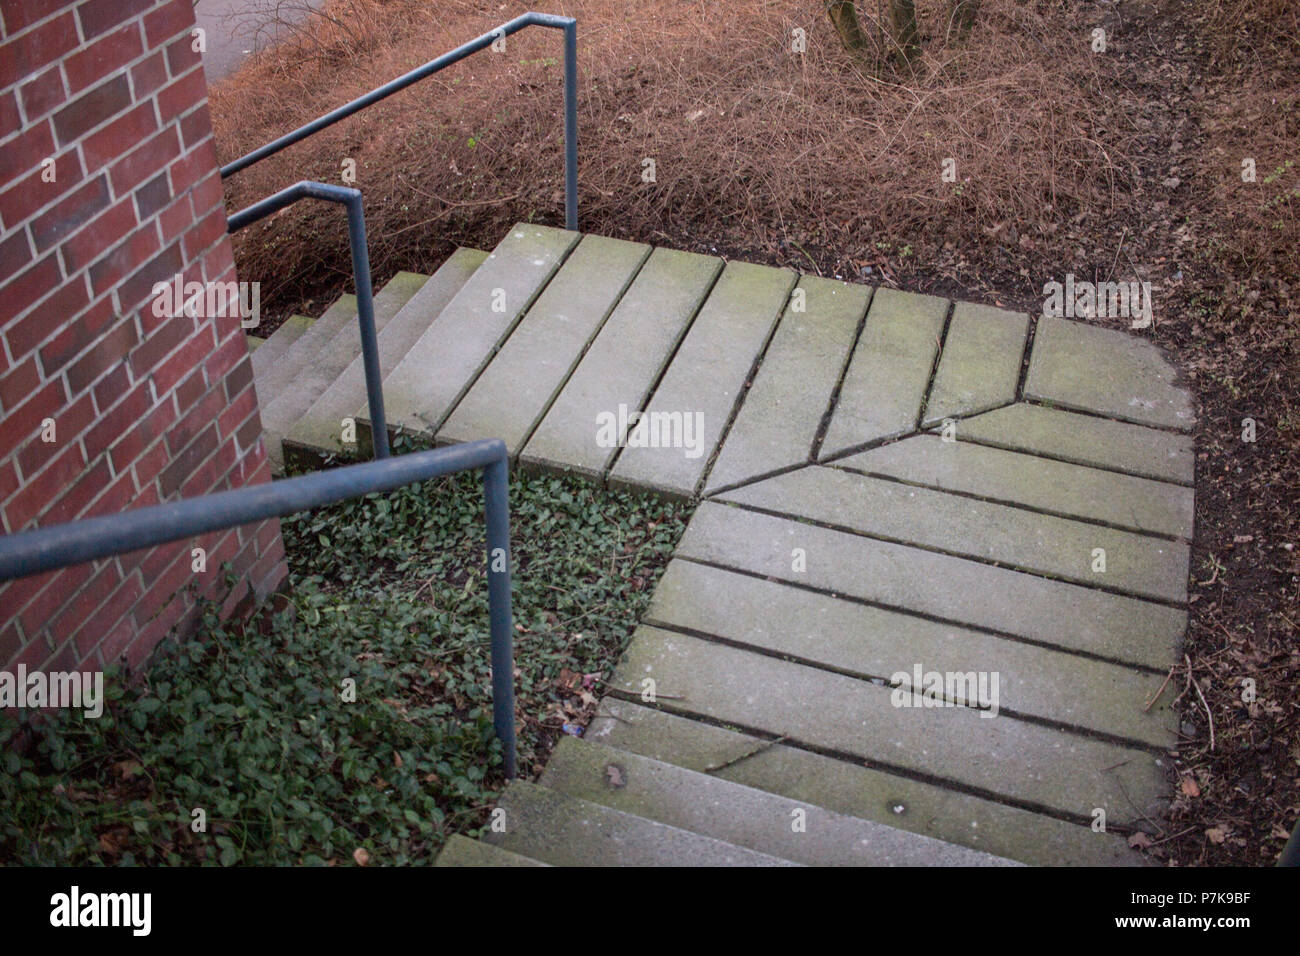 Stairs downwards. - Stock Image